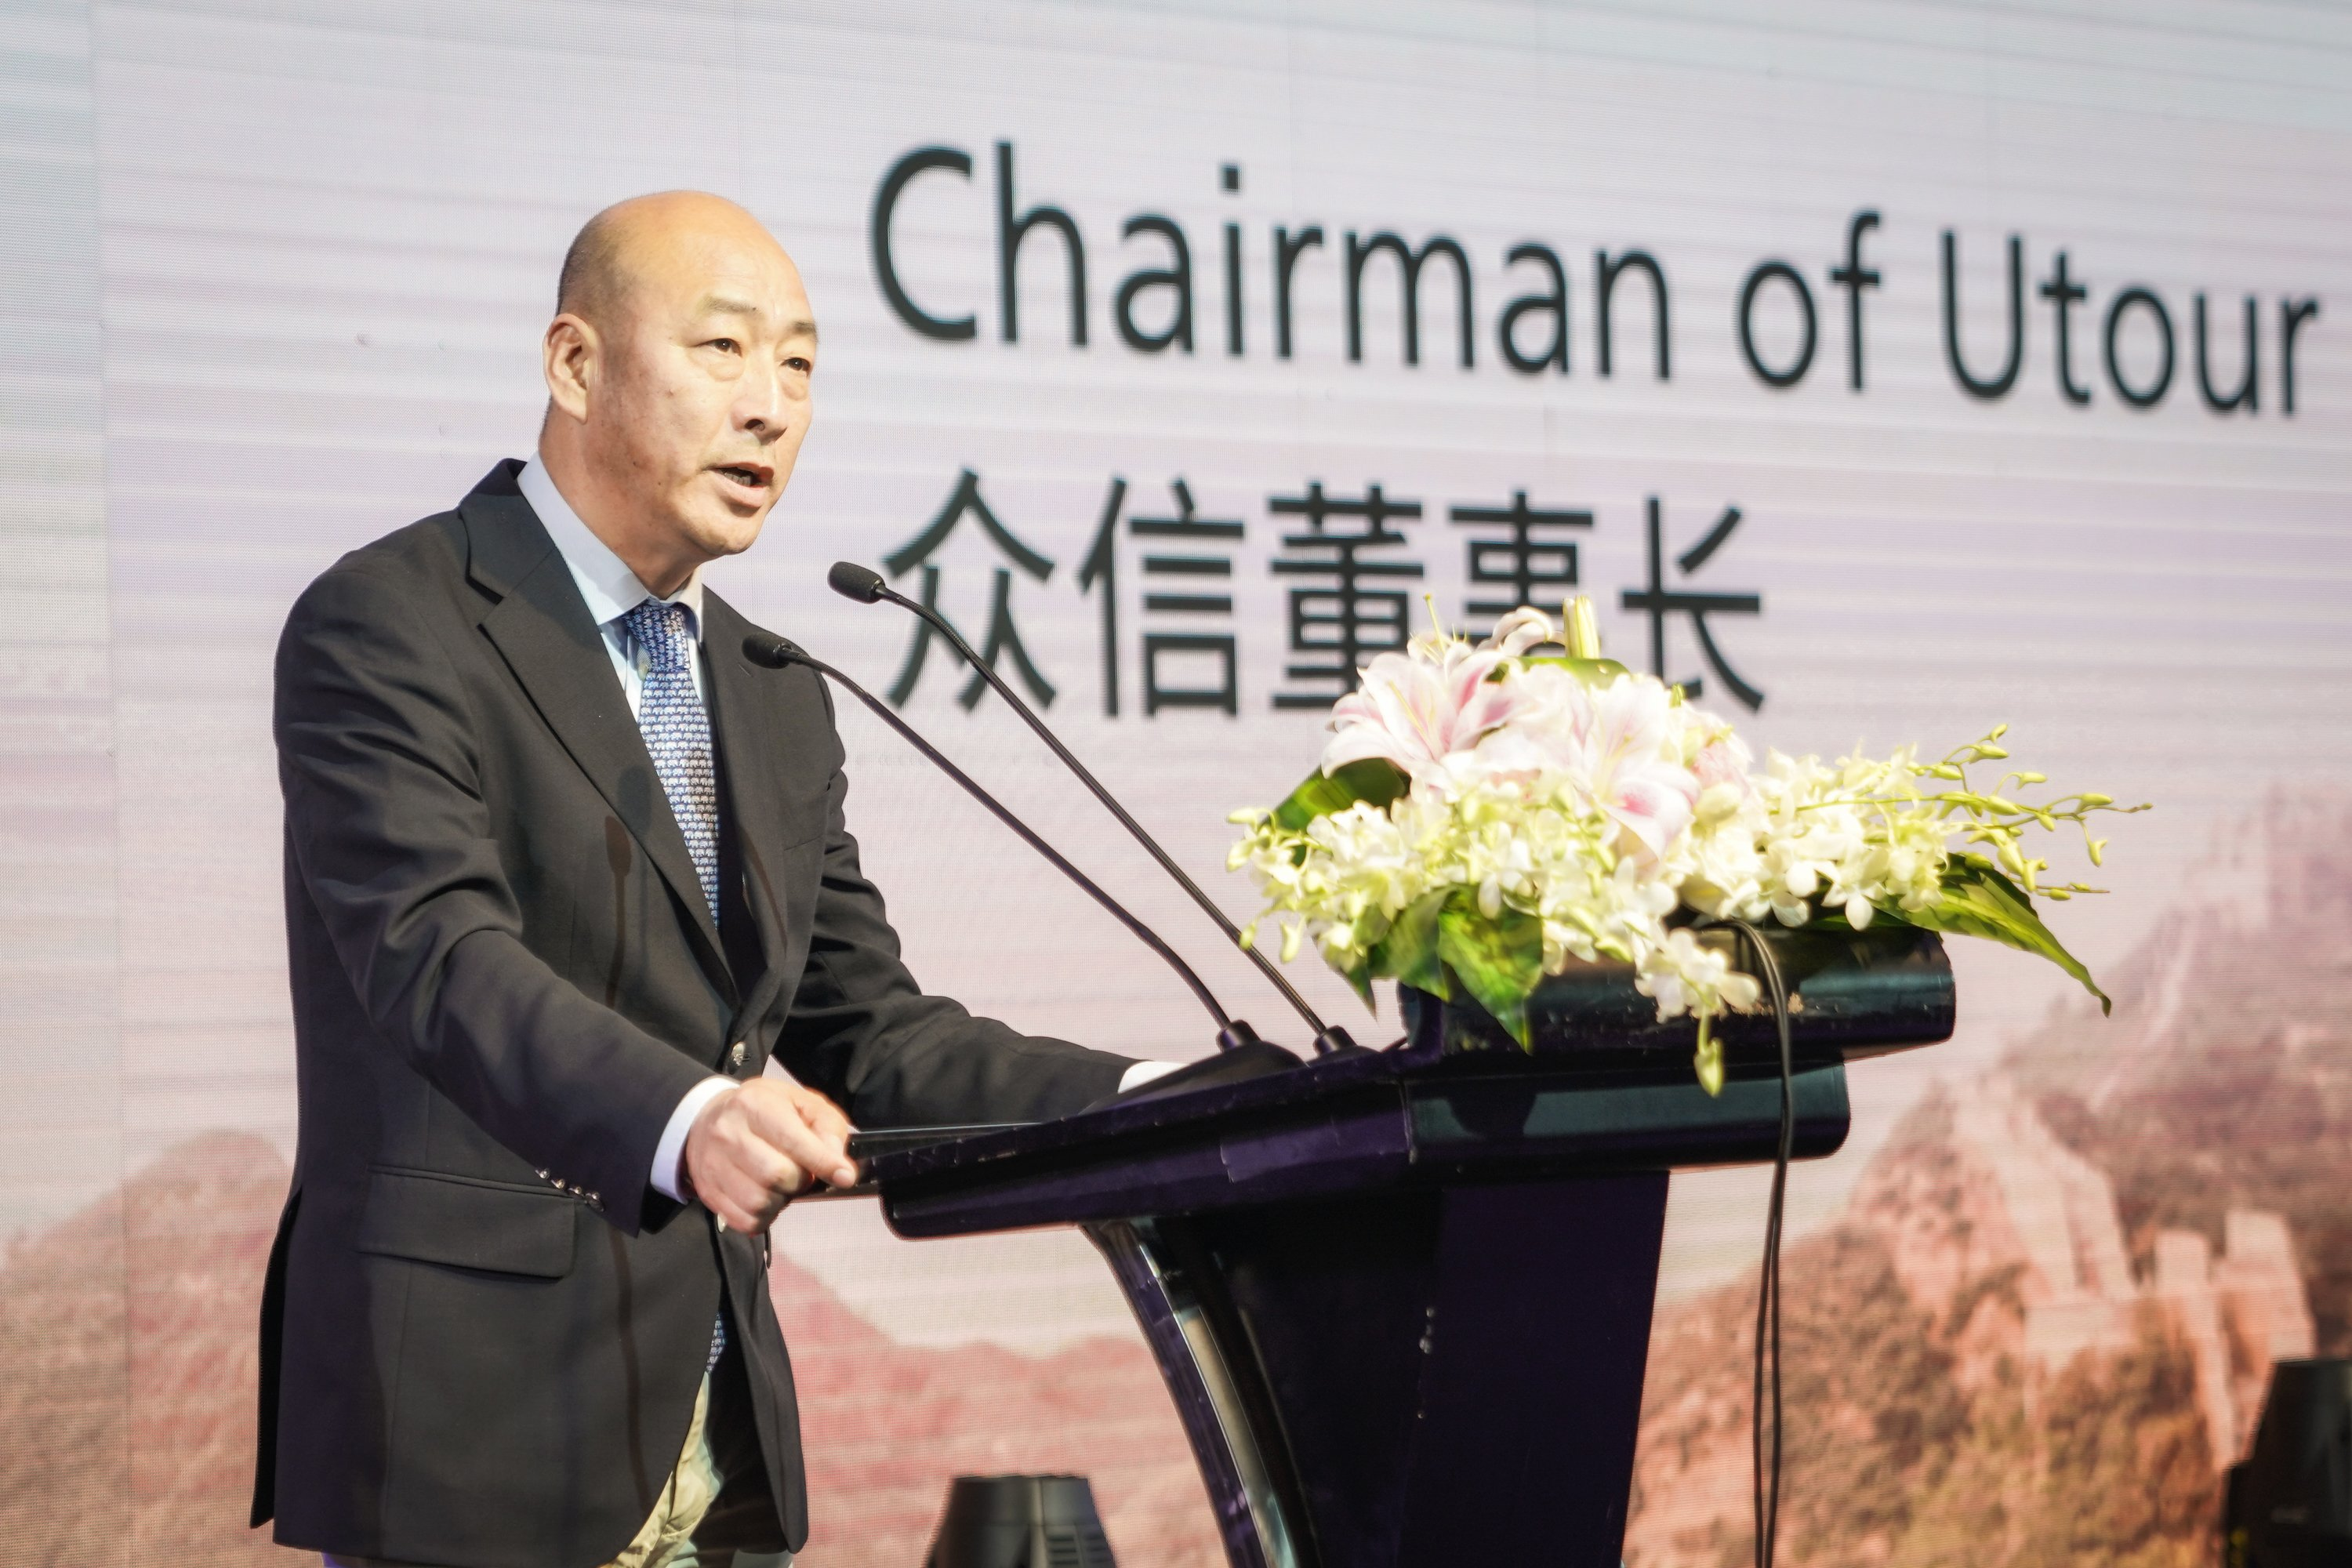 Opening Dinner 2019 Feng Bin, Chairman of utour